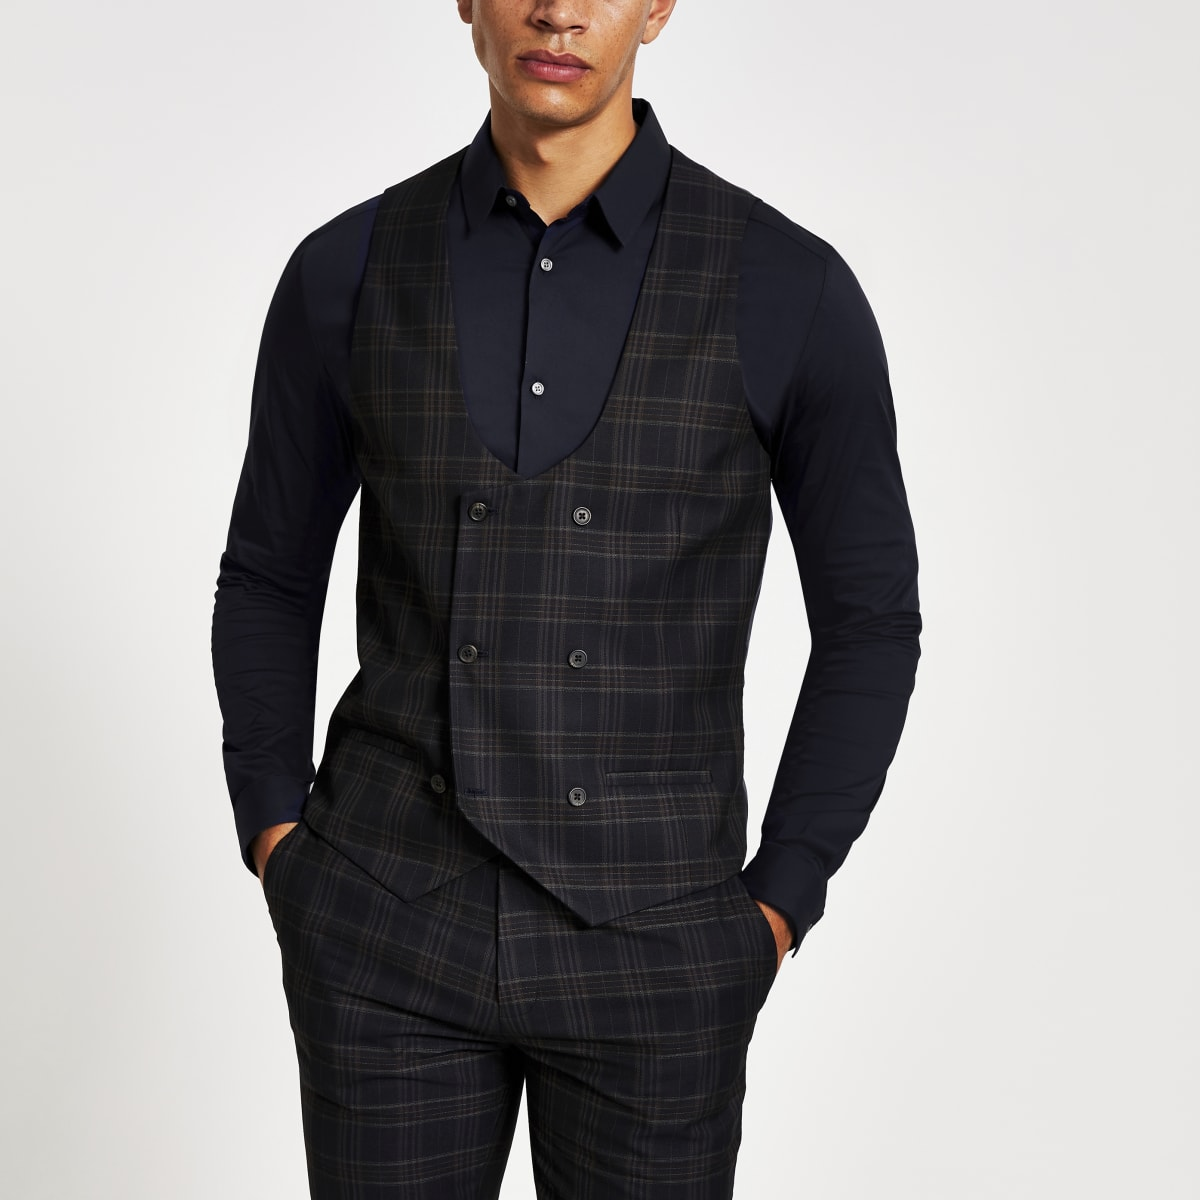 Navy check double breasted suit waistcoat